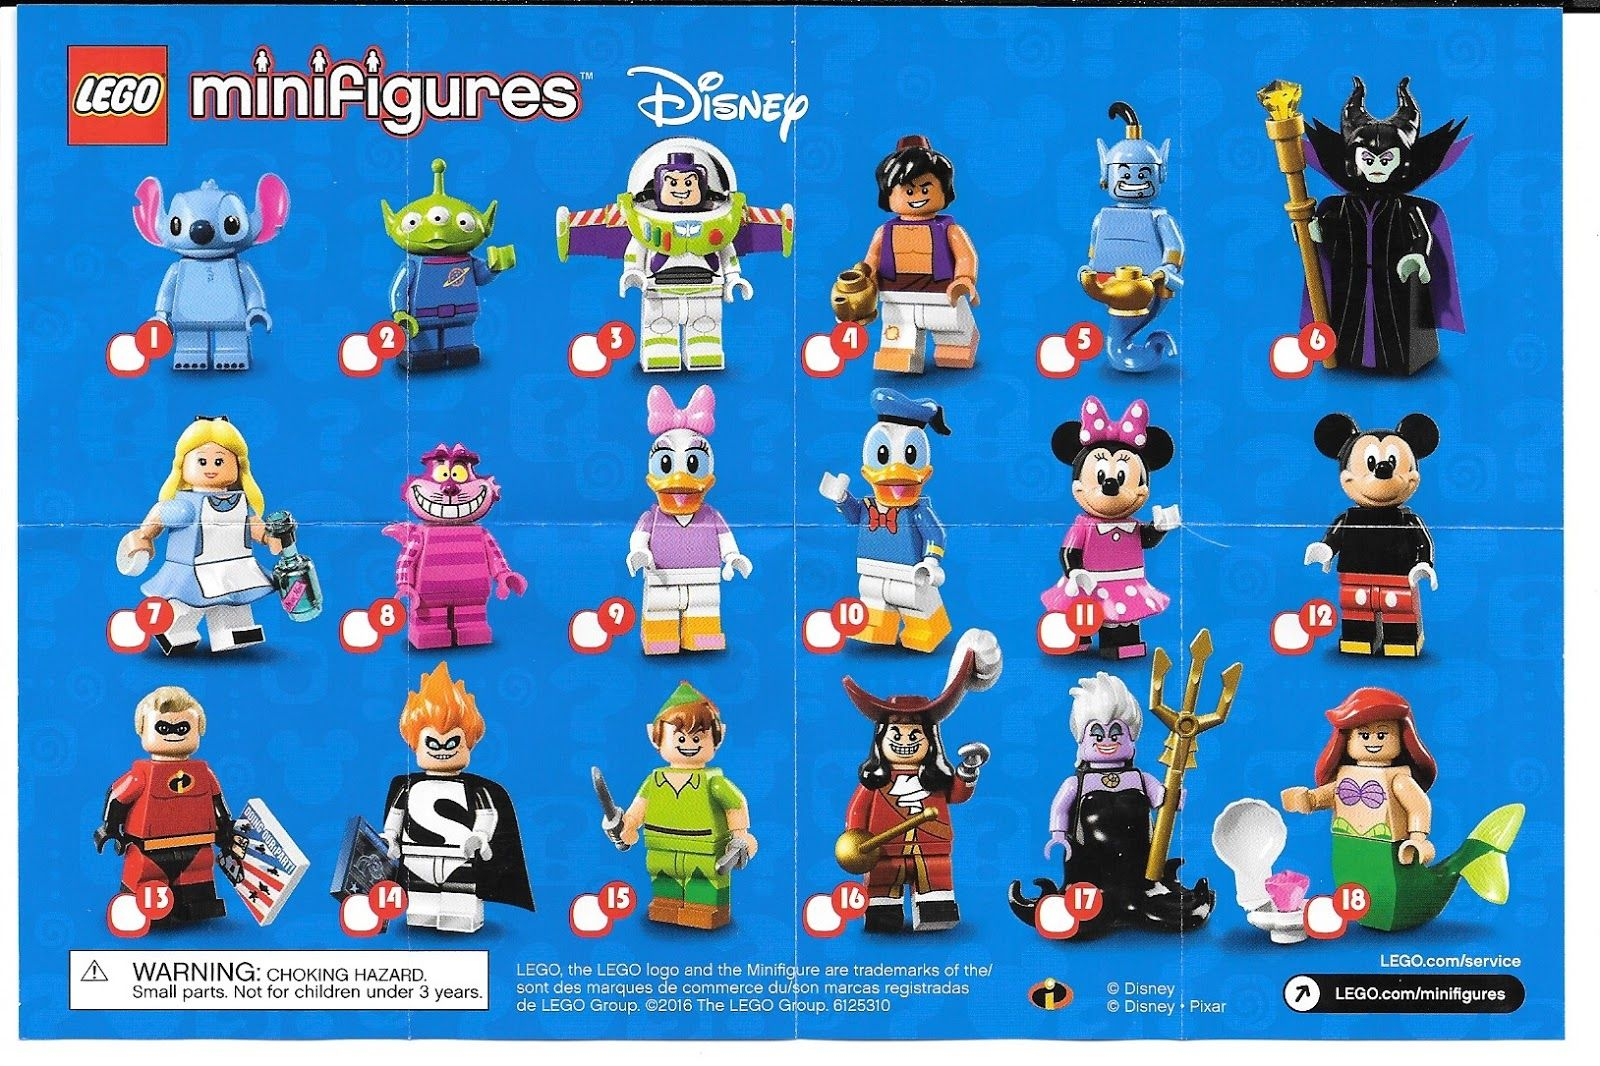 LEGO-MINIFIGURES  DISNEY X 1 TORSO FOR MR INCREDIBLE FROM LEGO DISNEY PARTS